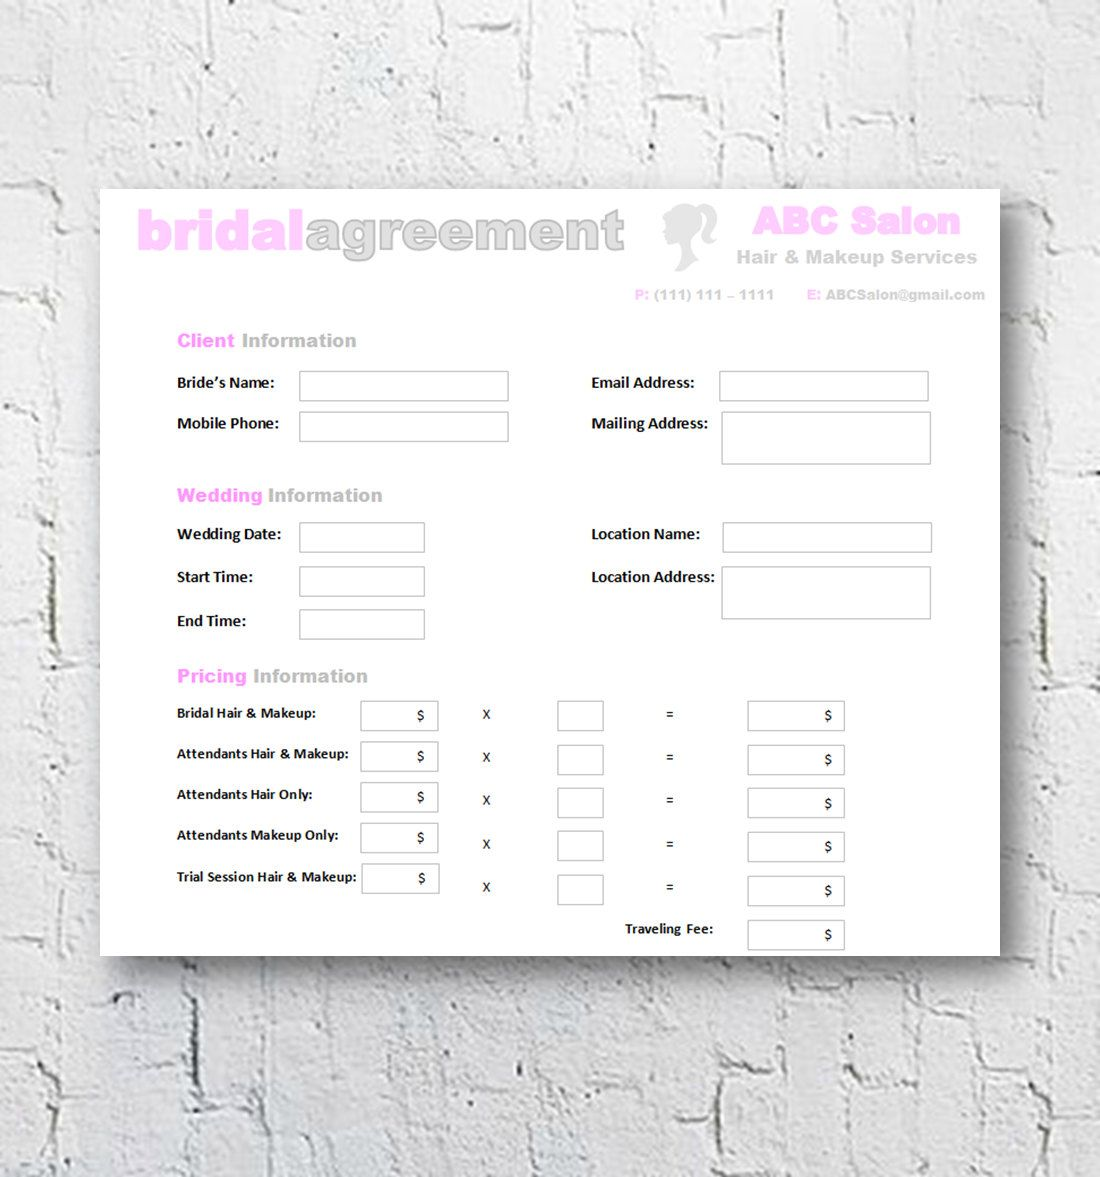 hair stylist & makeup artist bridal or event agreement